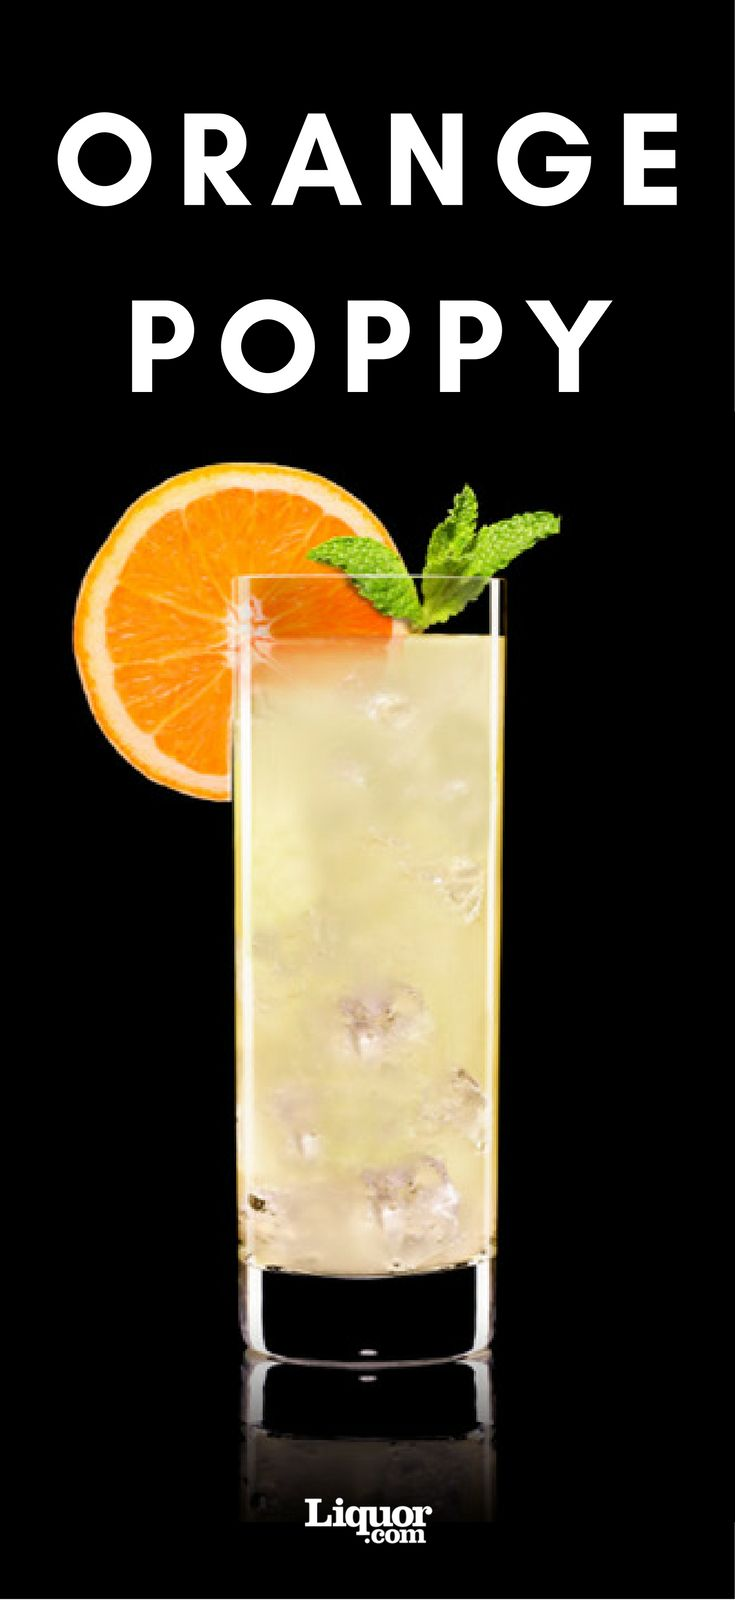 This citrusy #absinthe cocktail should be on your radar! Fizzy and delicious, this drink can make any day brighter.